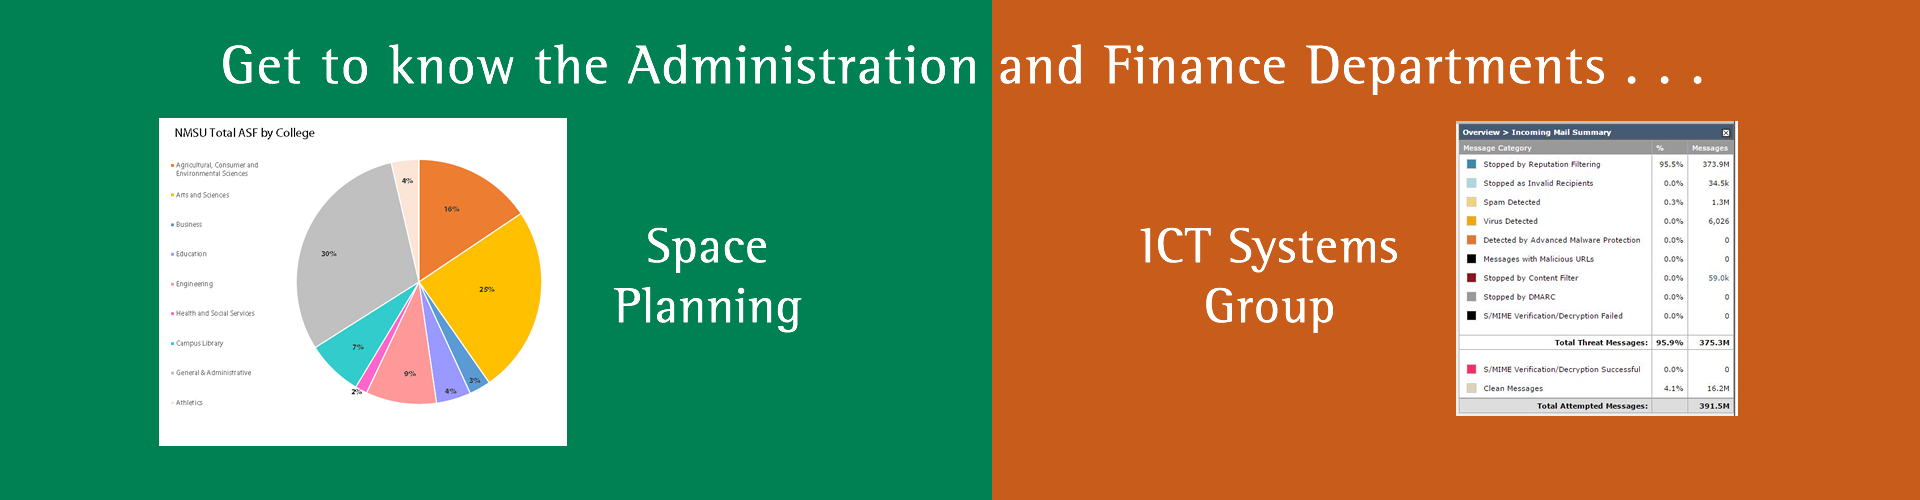 featured-department_ict-systems-group_space-planning-fw